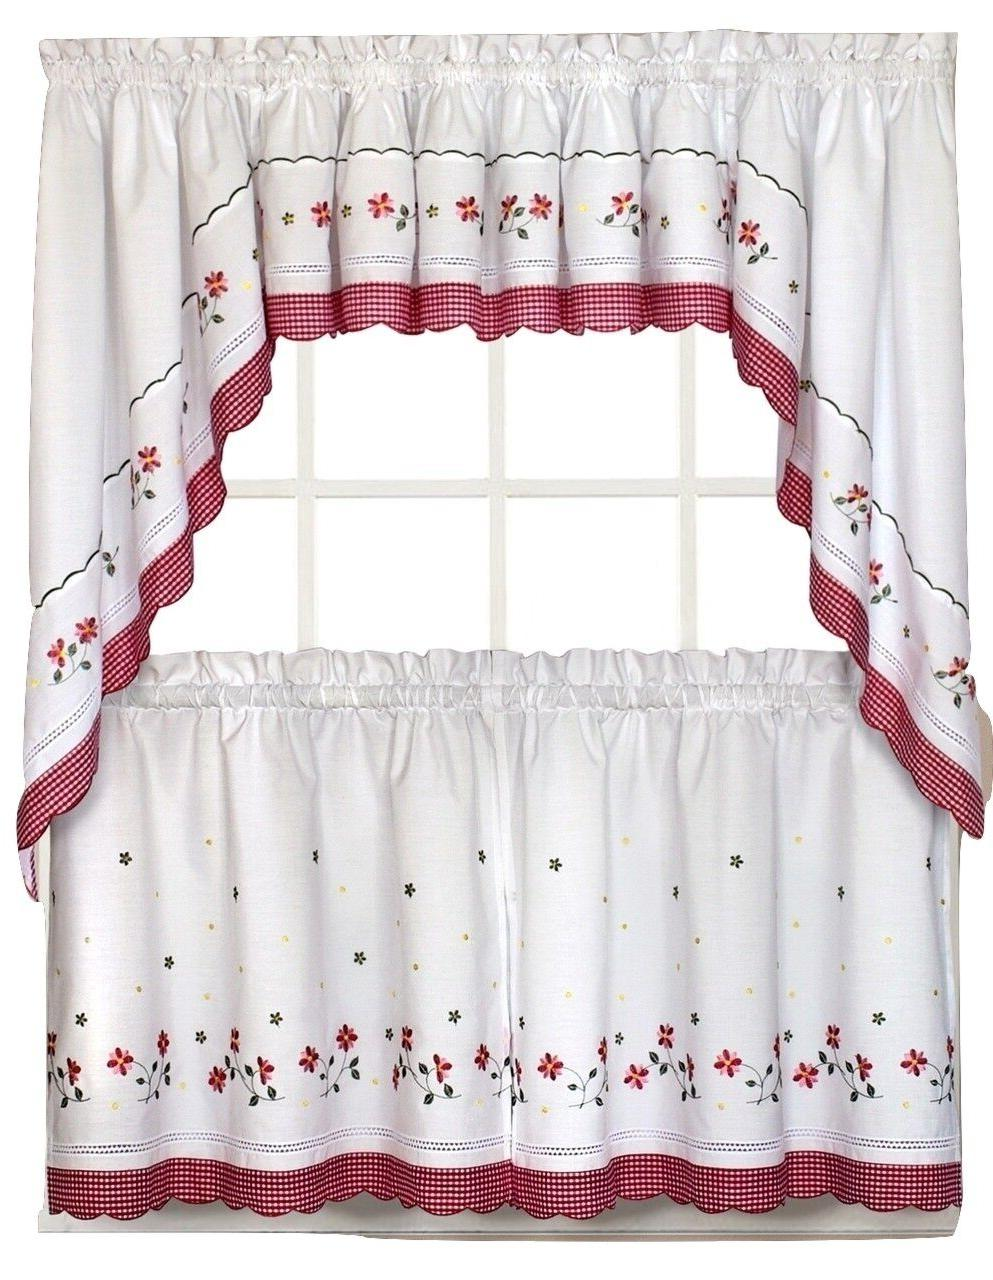 gingham floral kitchen curtain collection red new